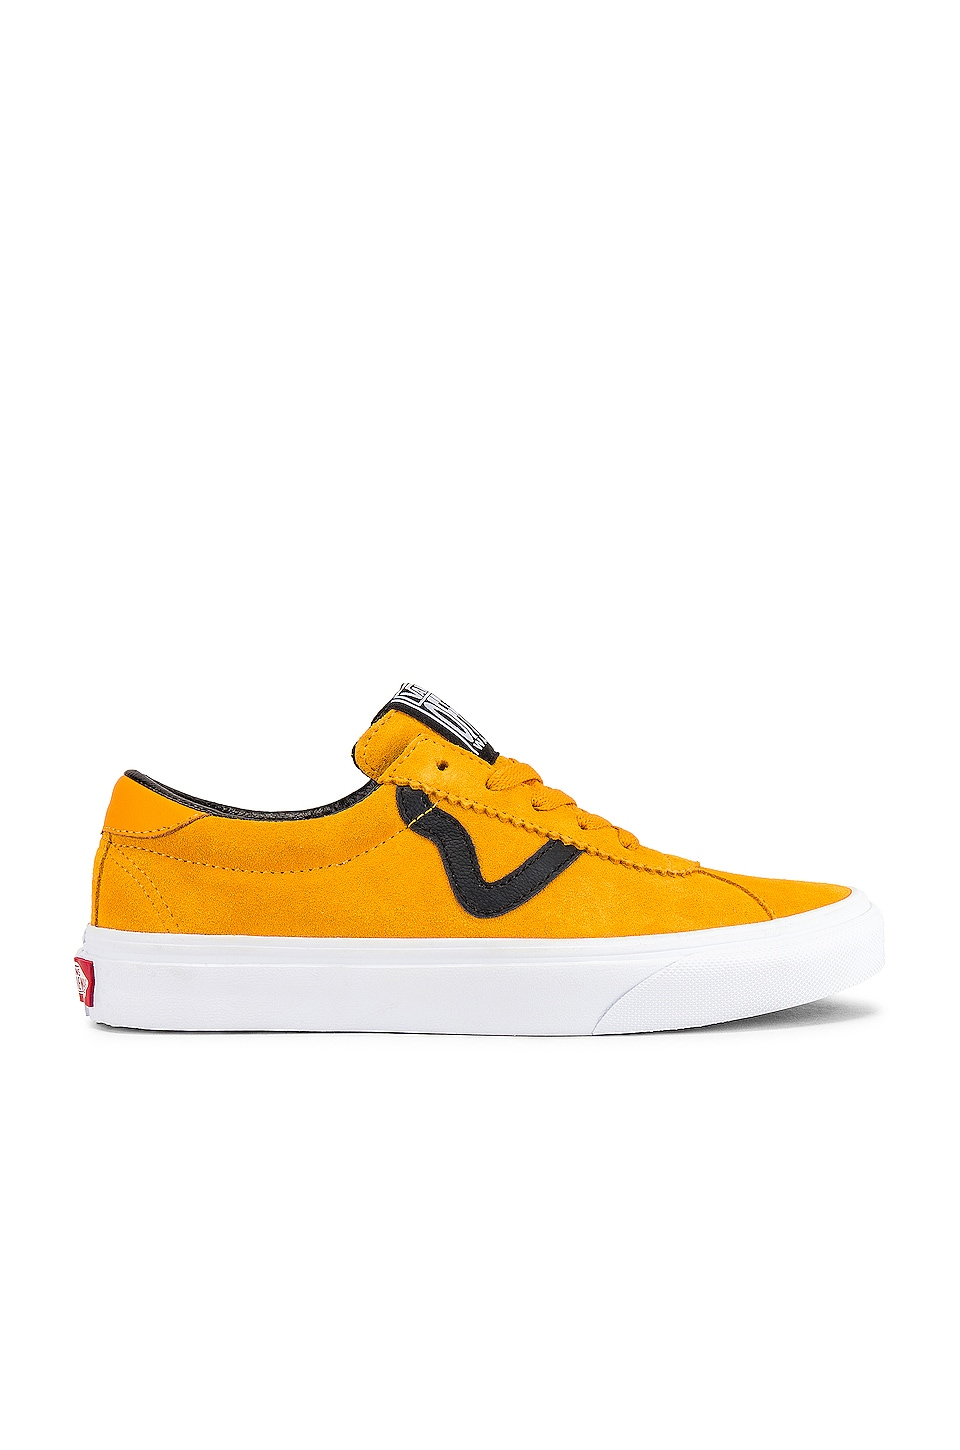 Vans Vans Sport in Cadmium Yellow & True White